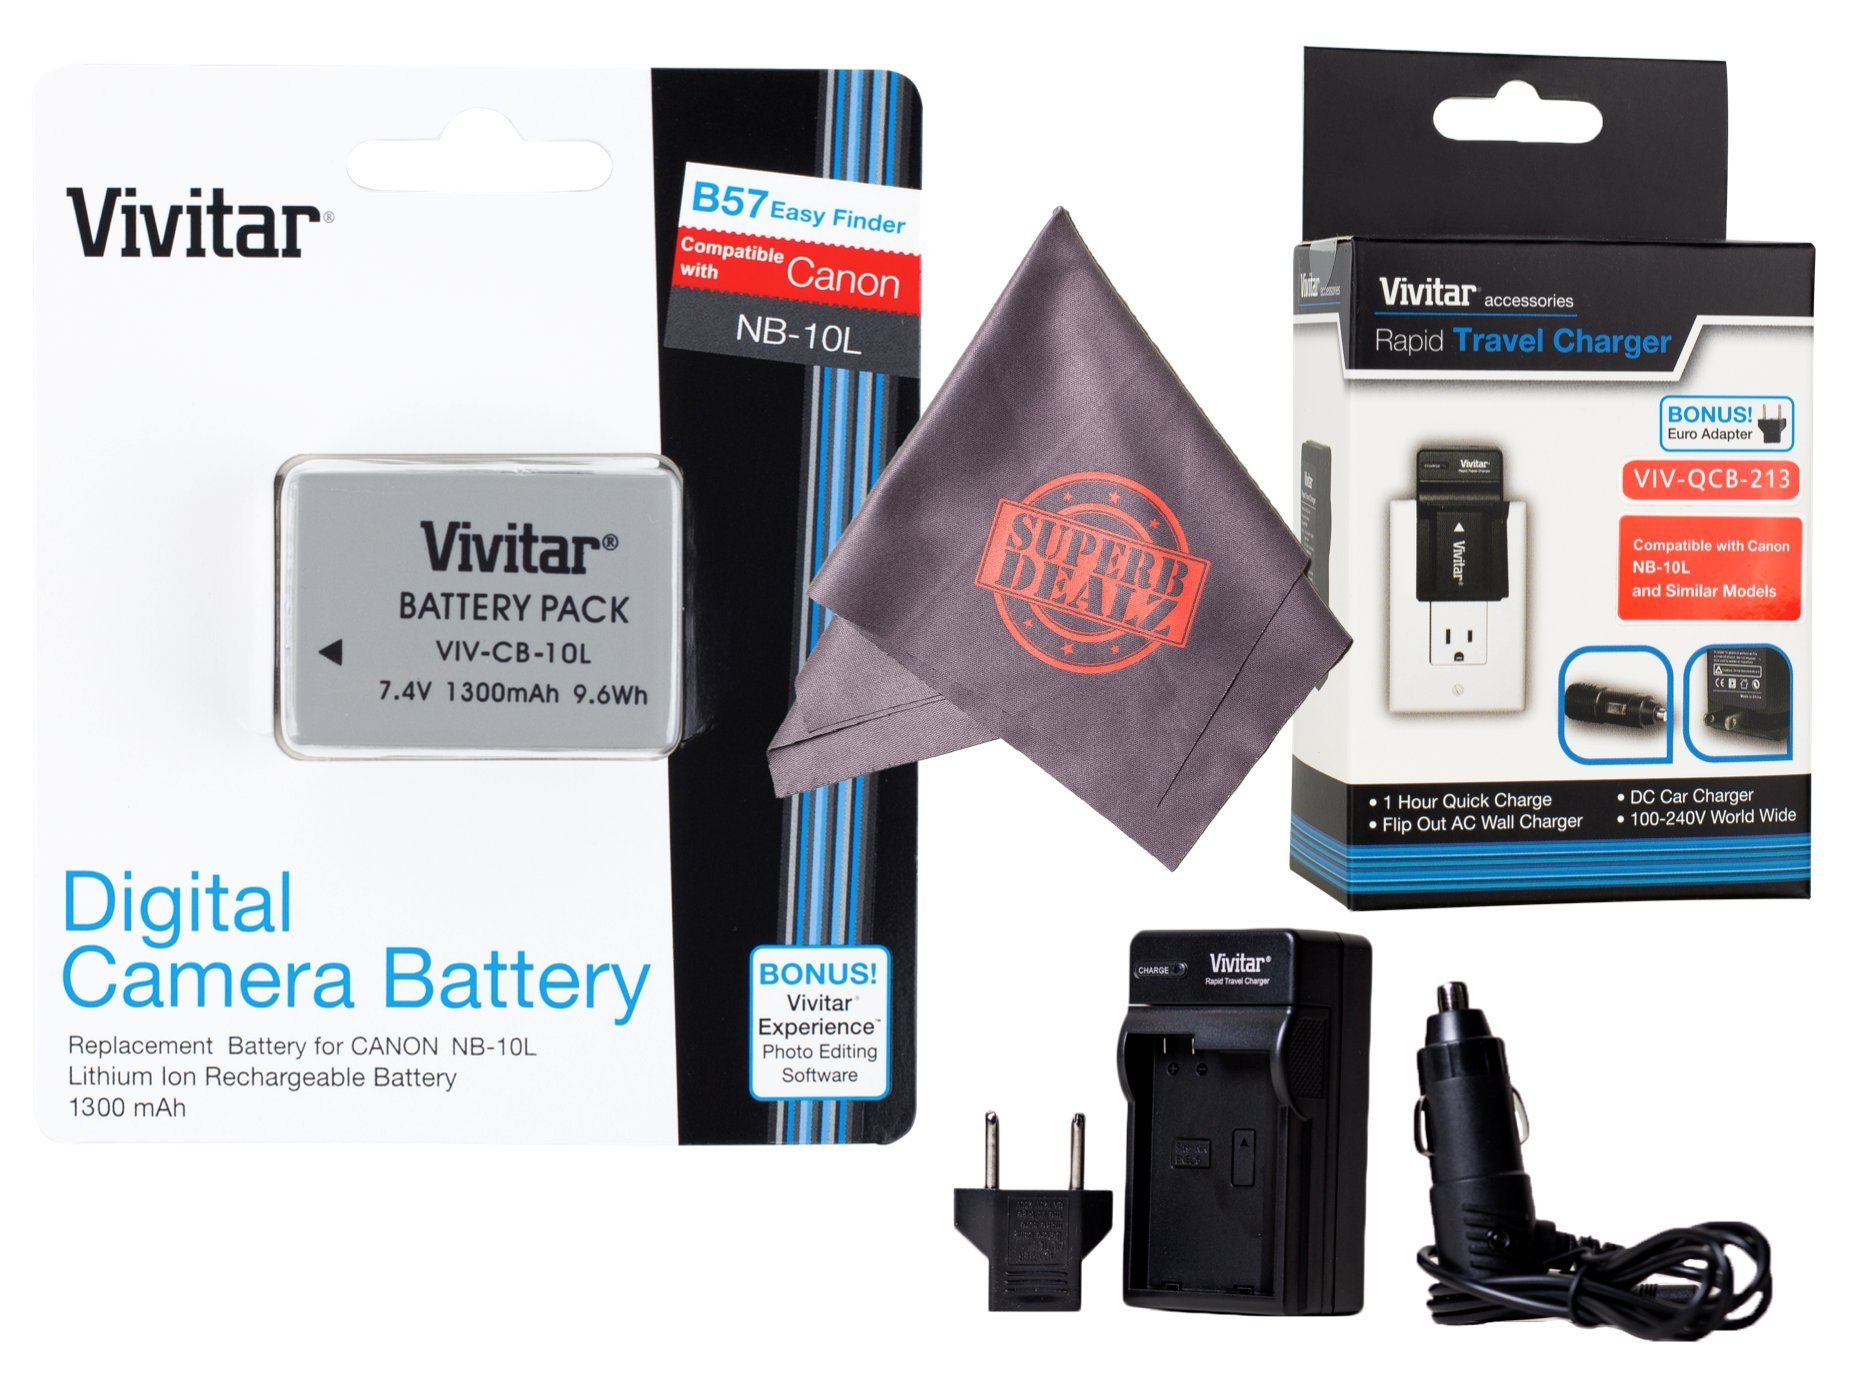 Vivitar NB-10L Ultra High Capacity Rechargeable 1300mAh Li-ion Battery + AC/DC Vivitar Rapid Travel Charger + Microfiber Lens Cleaning Cloth for CANON PowerShot (Canon NB-10L Replacement) by Vivitar